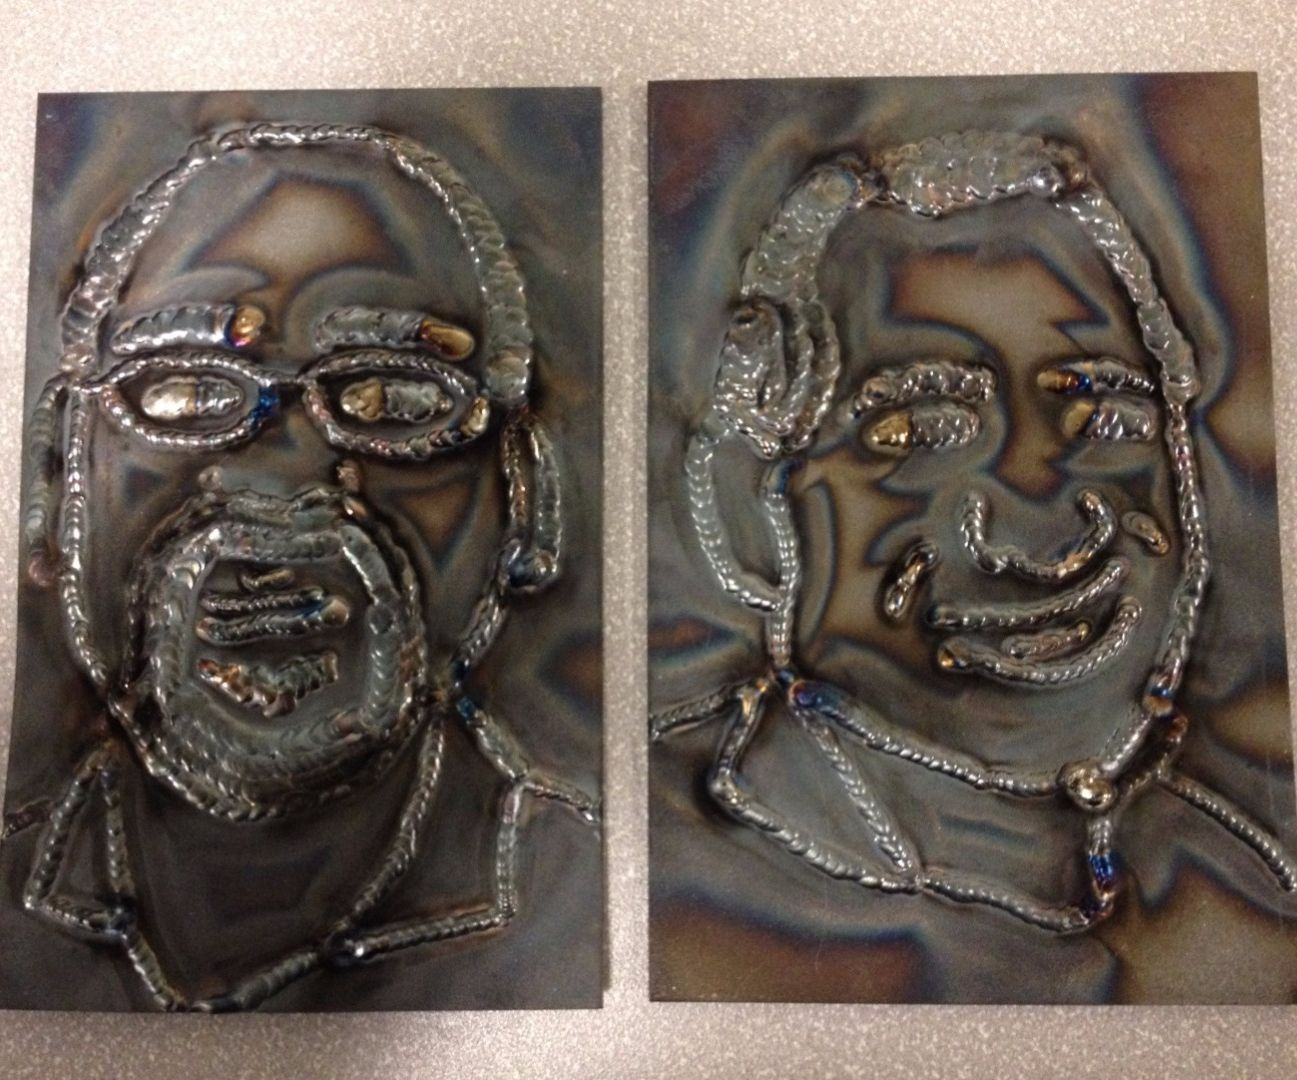 Welded Portraits Instructables